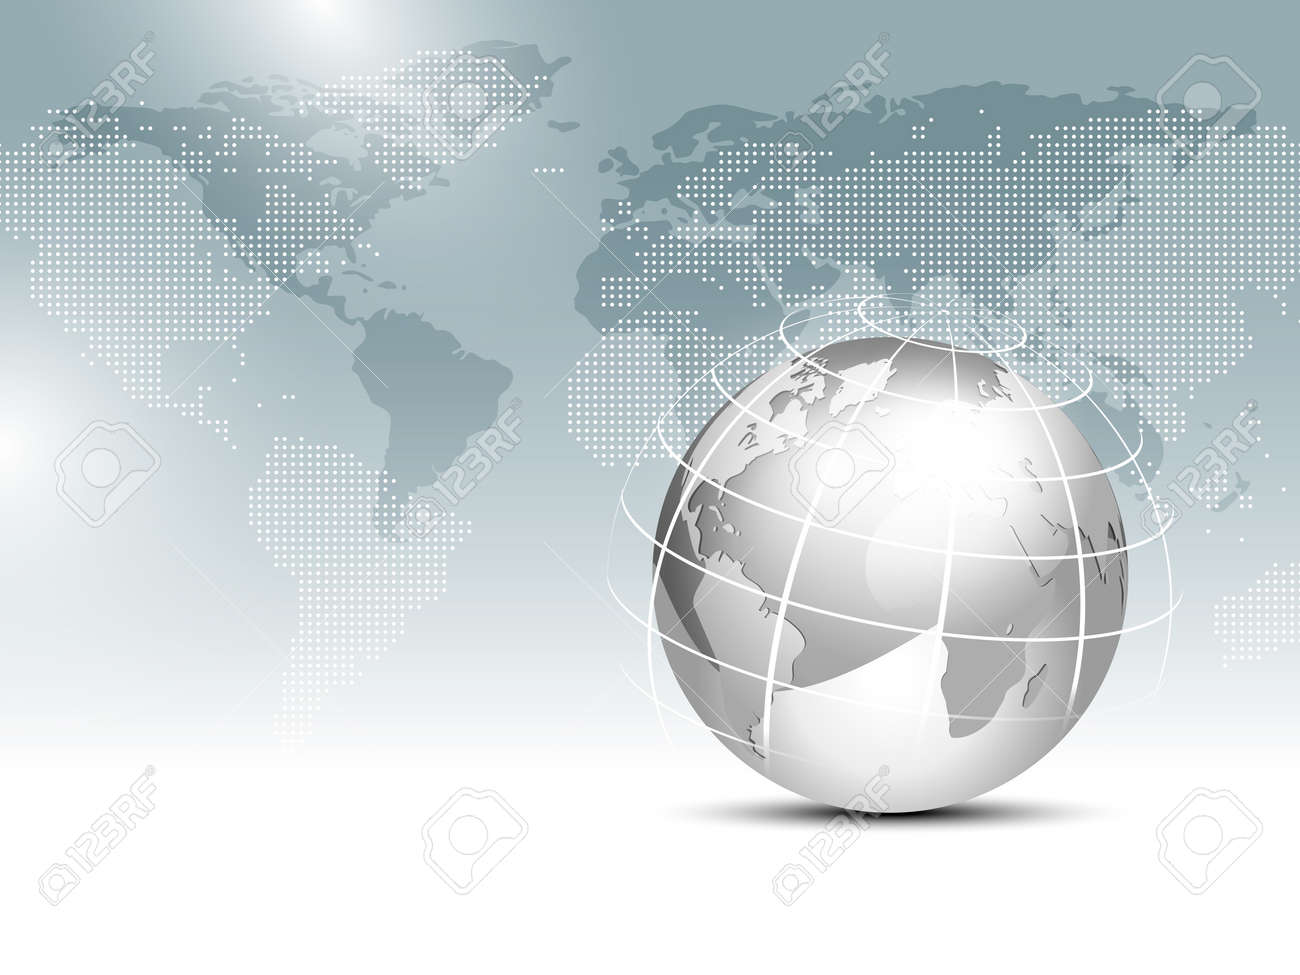 World map background with globe - global finance business template - 53541110